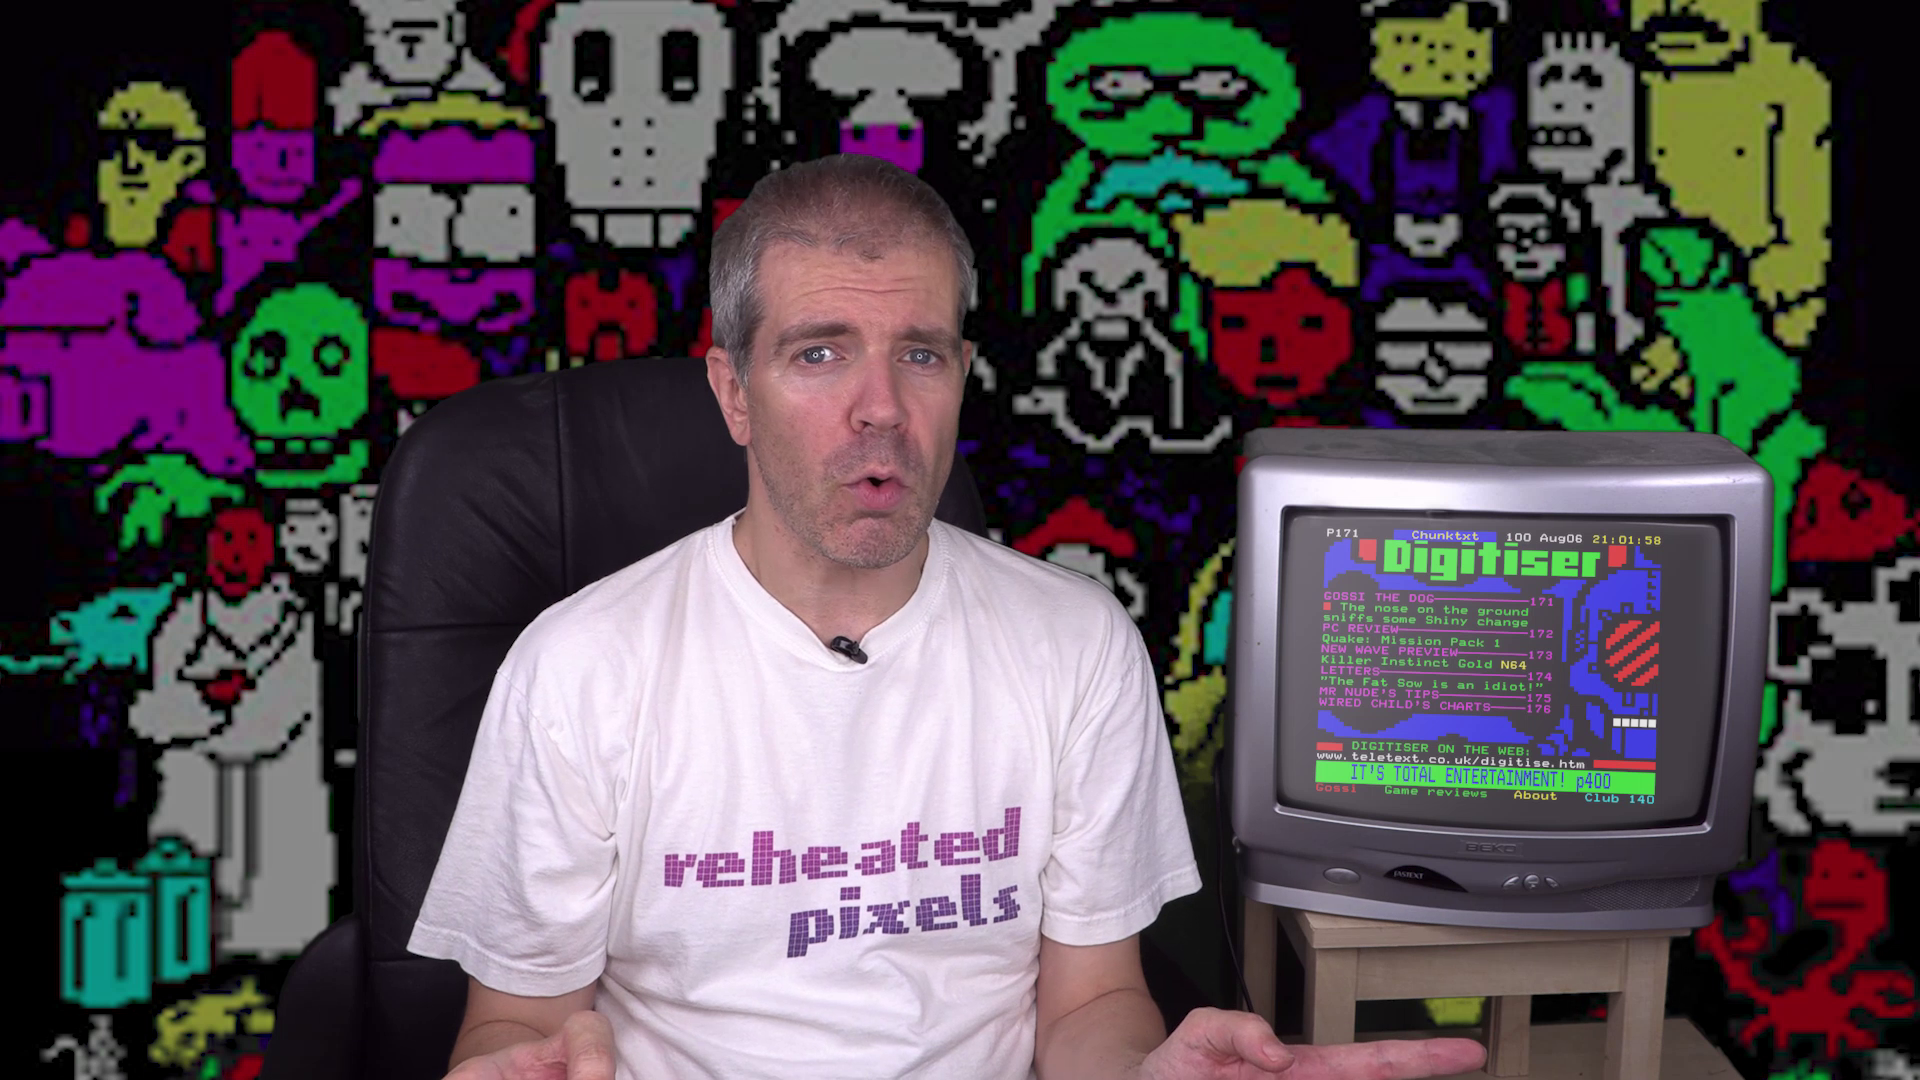 Pete Prodge explains Digitiser